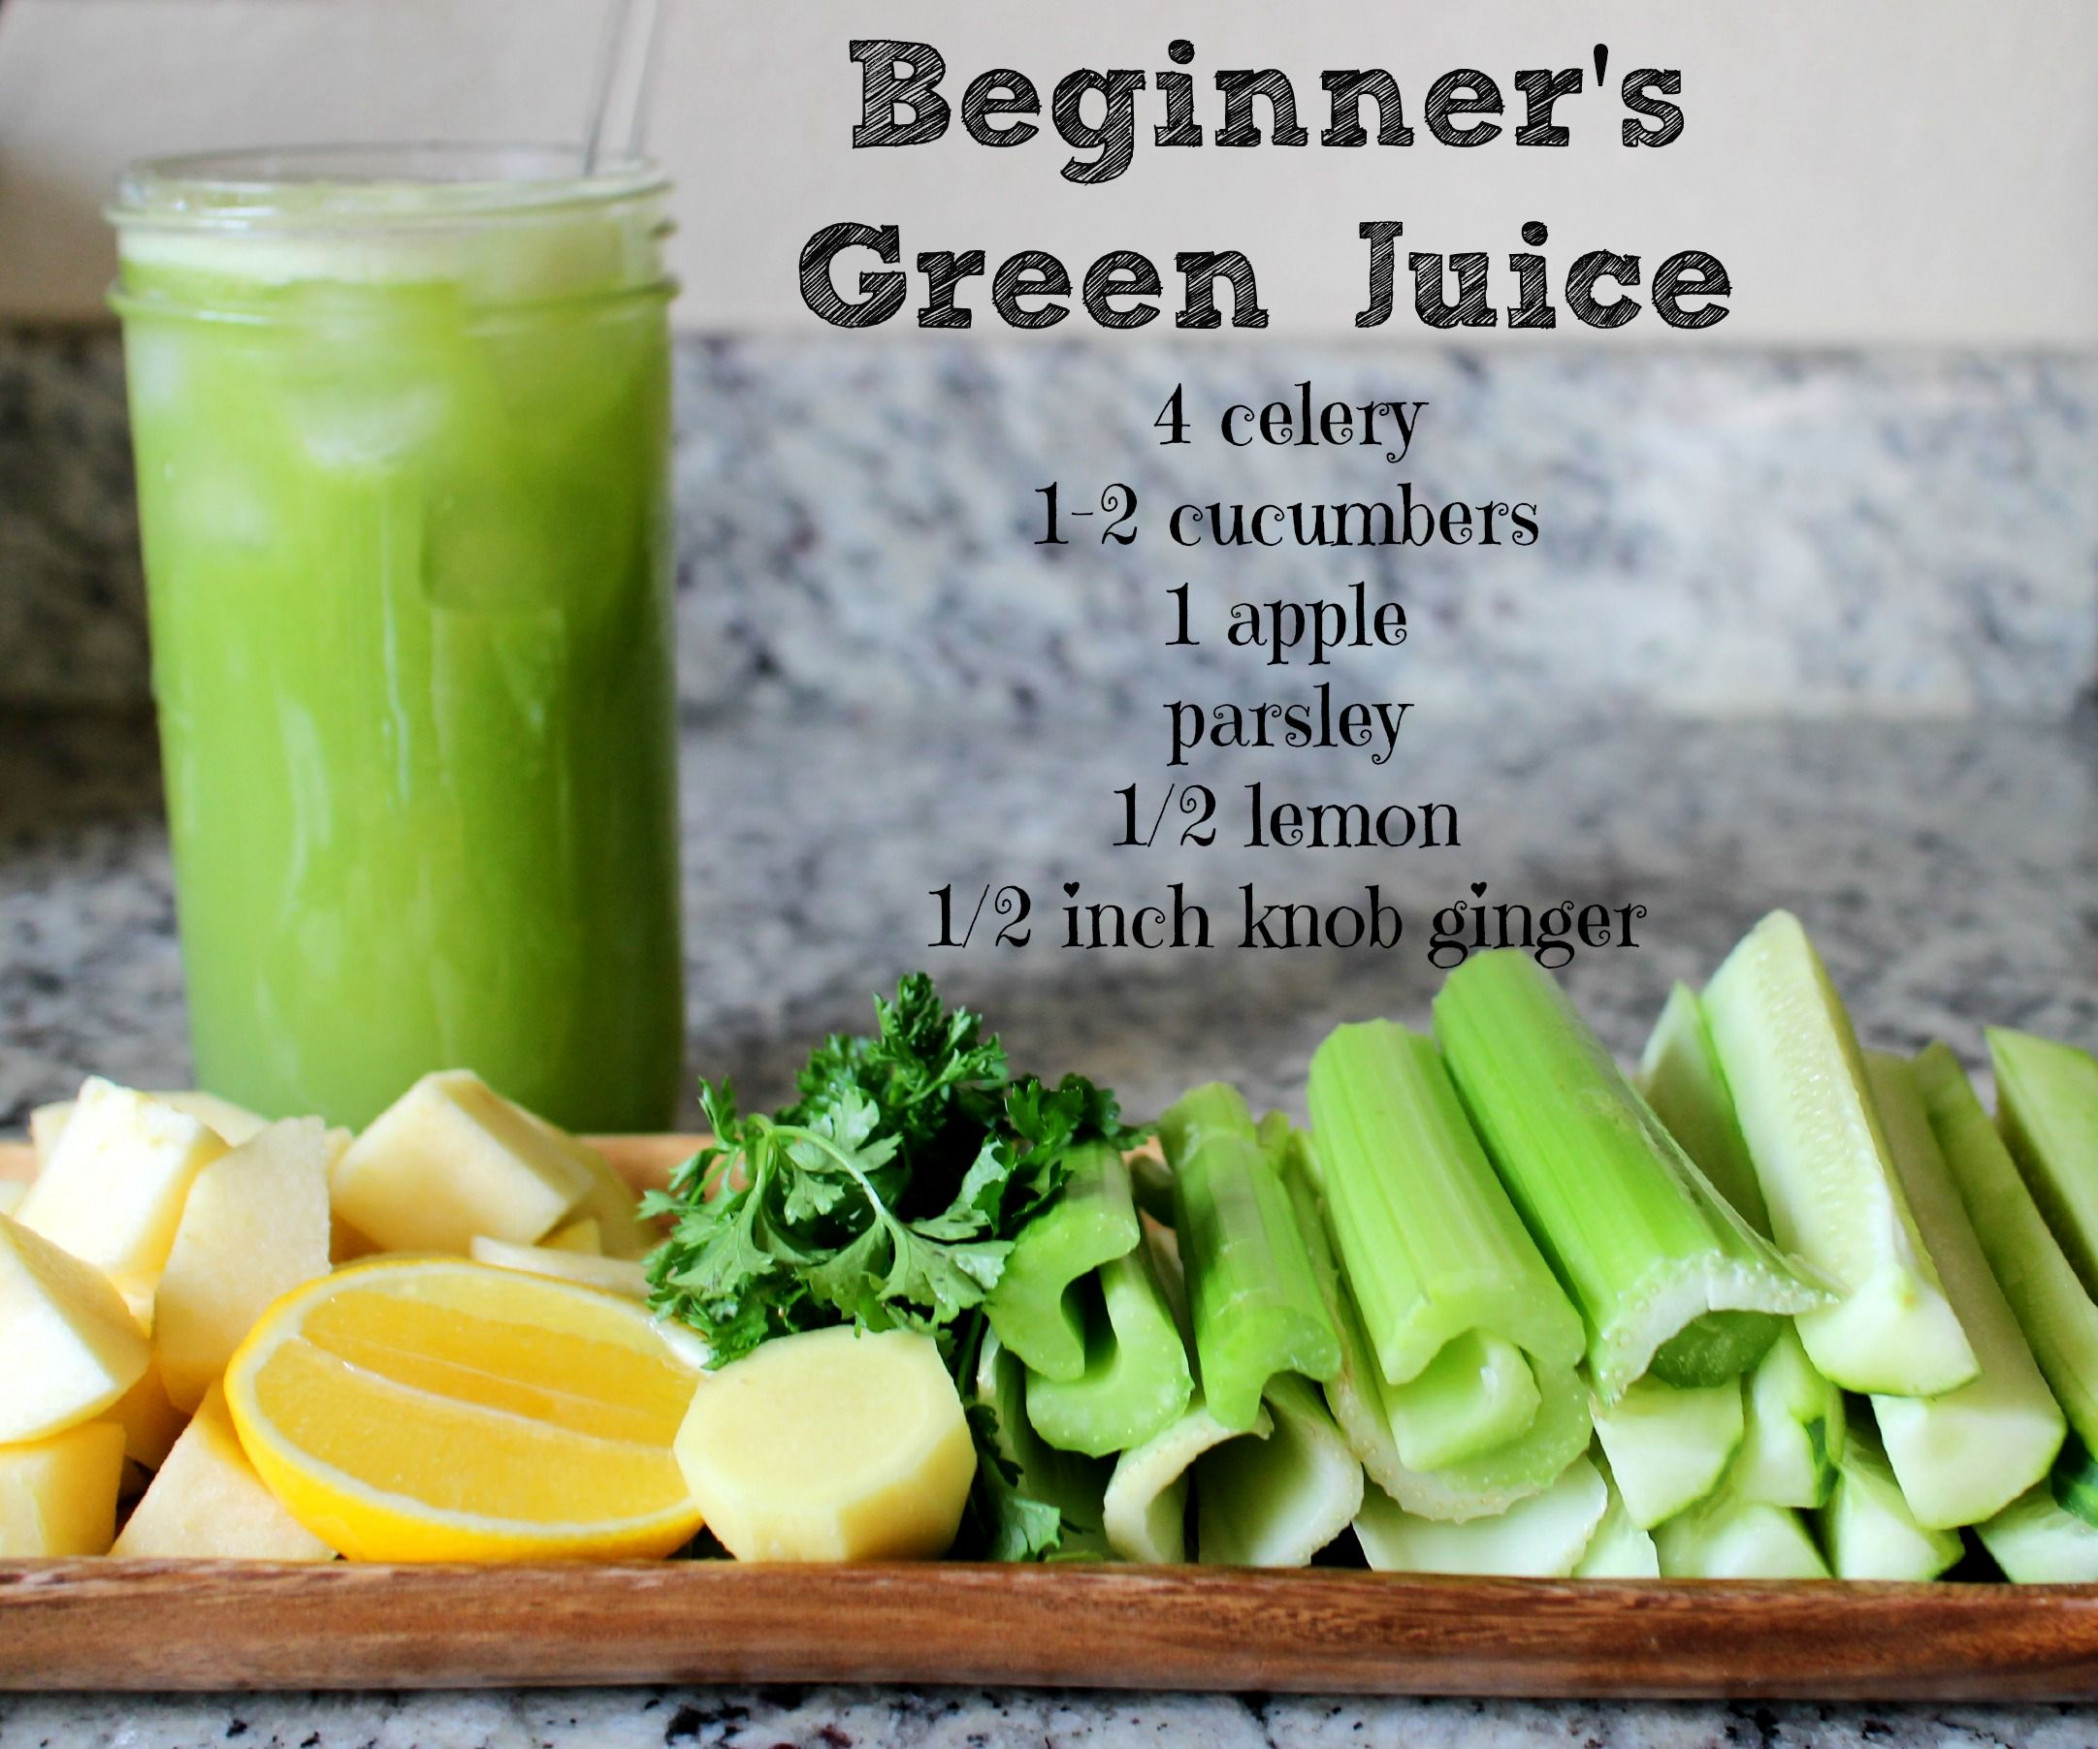 Green Juice Recipe for Beginners. Looks yummy and ...